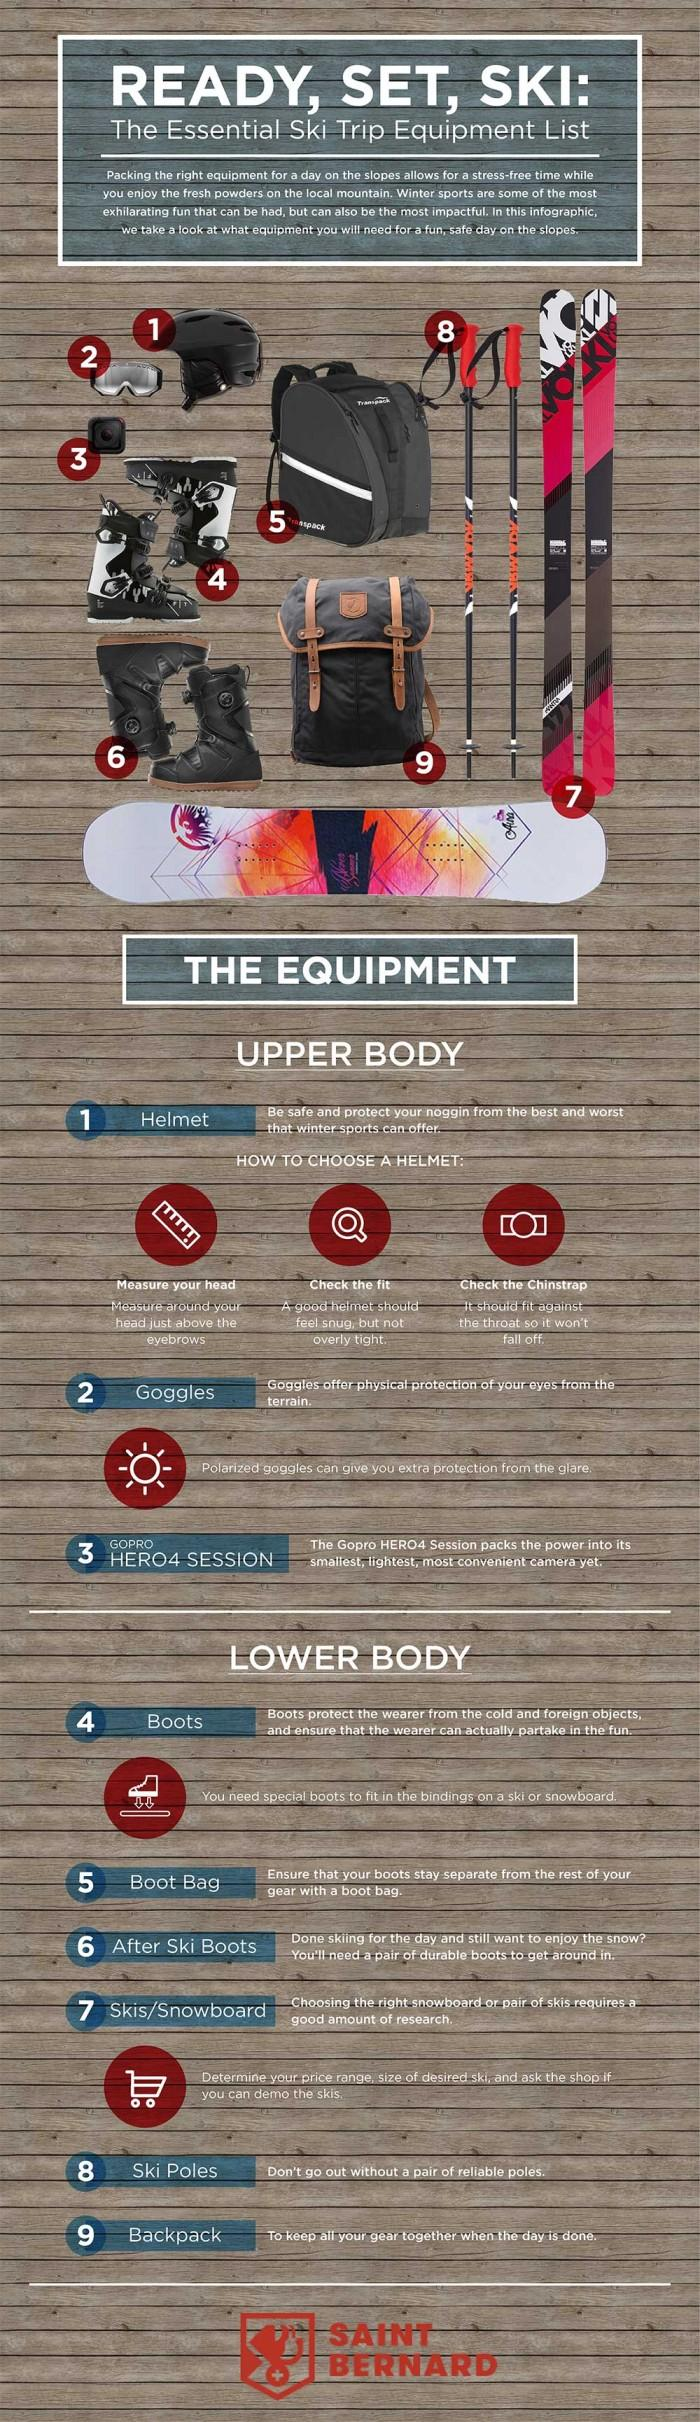 Ready, Set, Ski - The Essential Ski Trip Equipment List